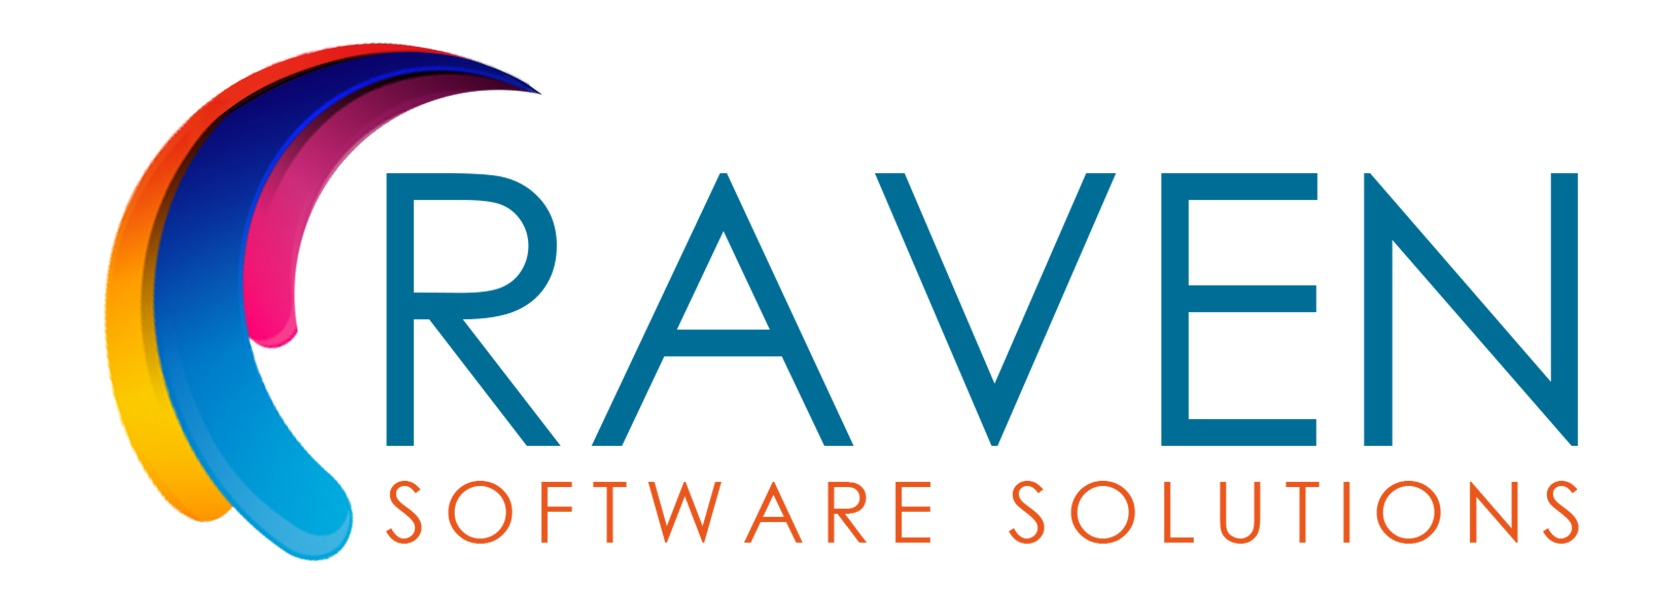 Raven Software Soultions